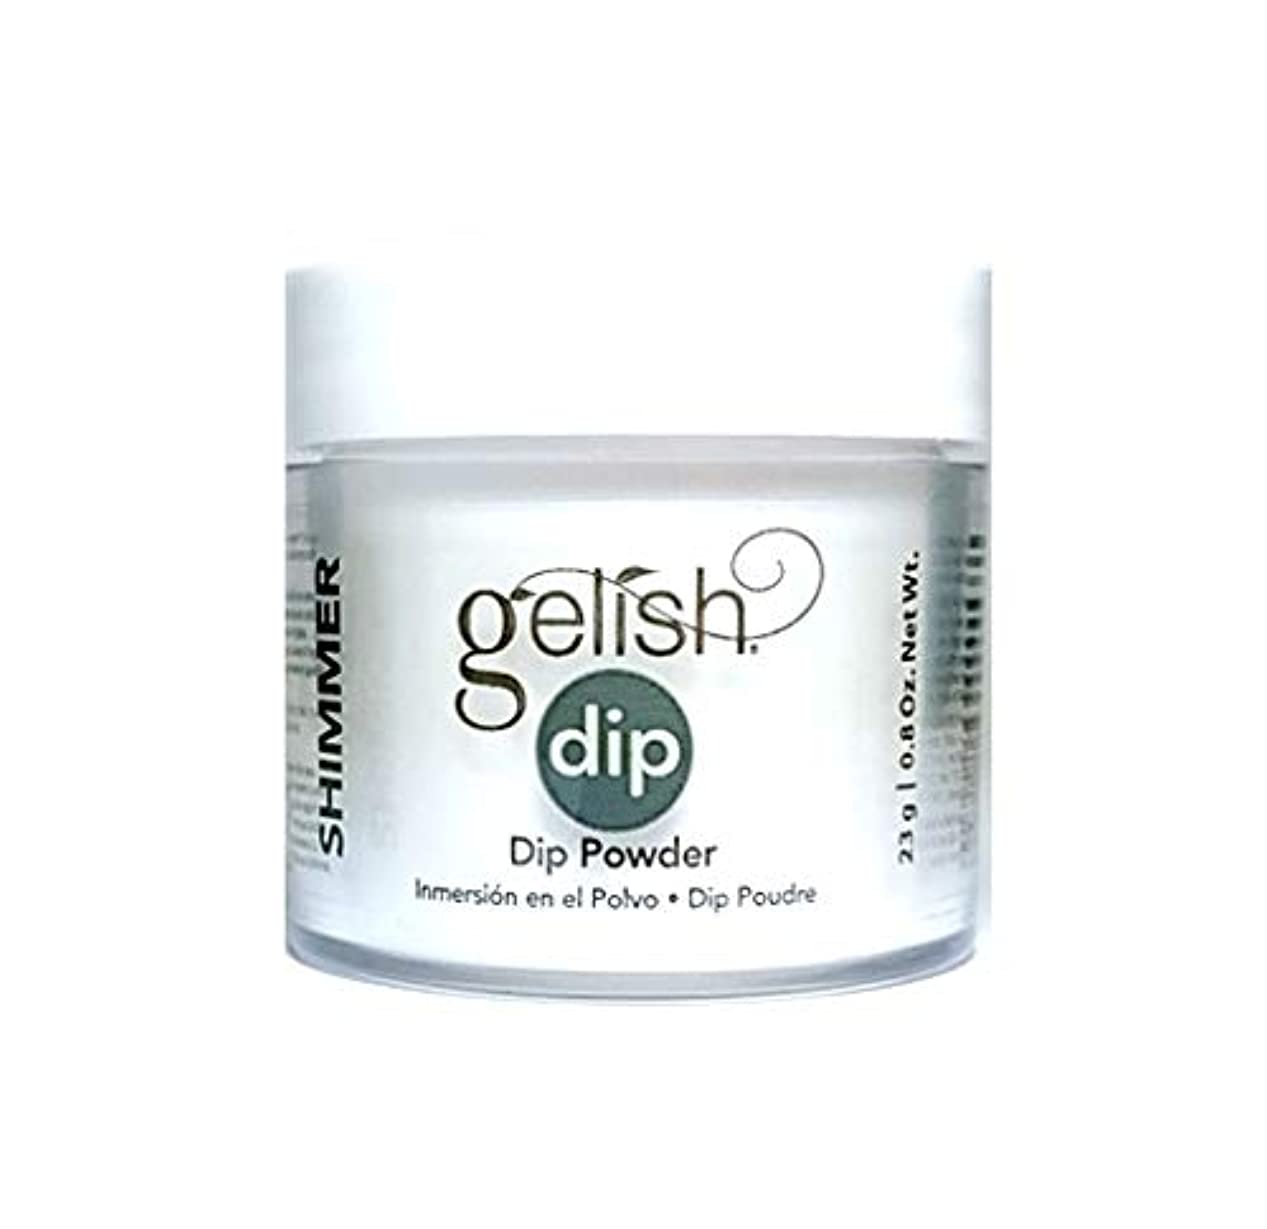 ハシーフロー酸Harmony Gelish - Dip Powder - Izzy Wizzy, Let's Get Busy - 23g / 0.8oz